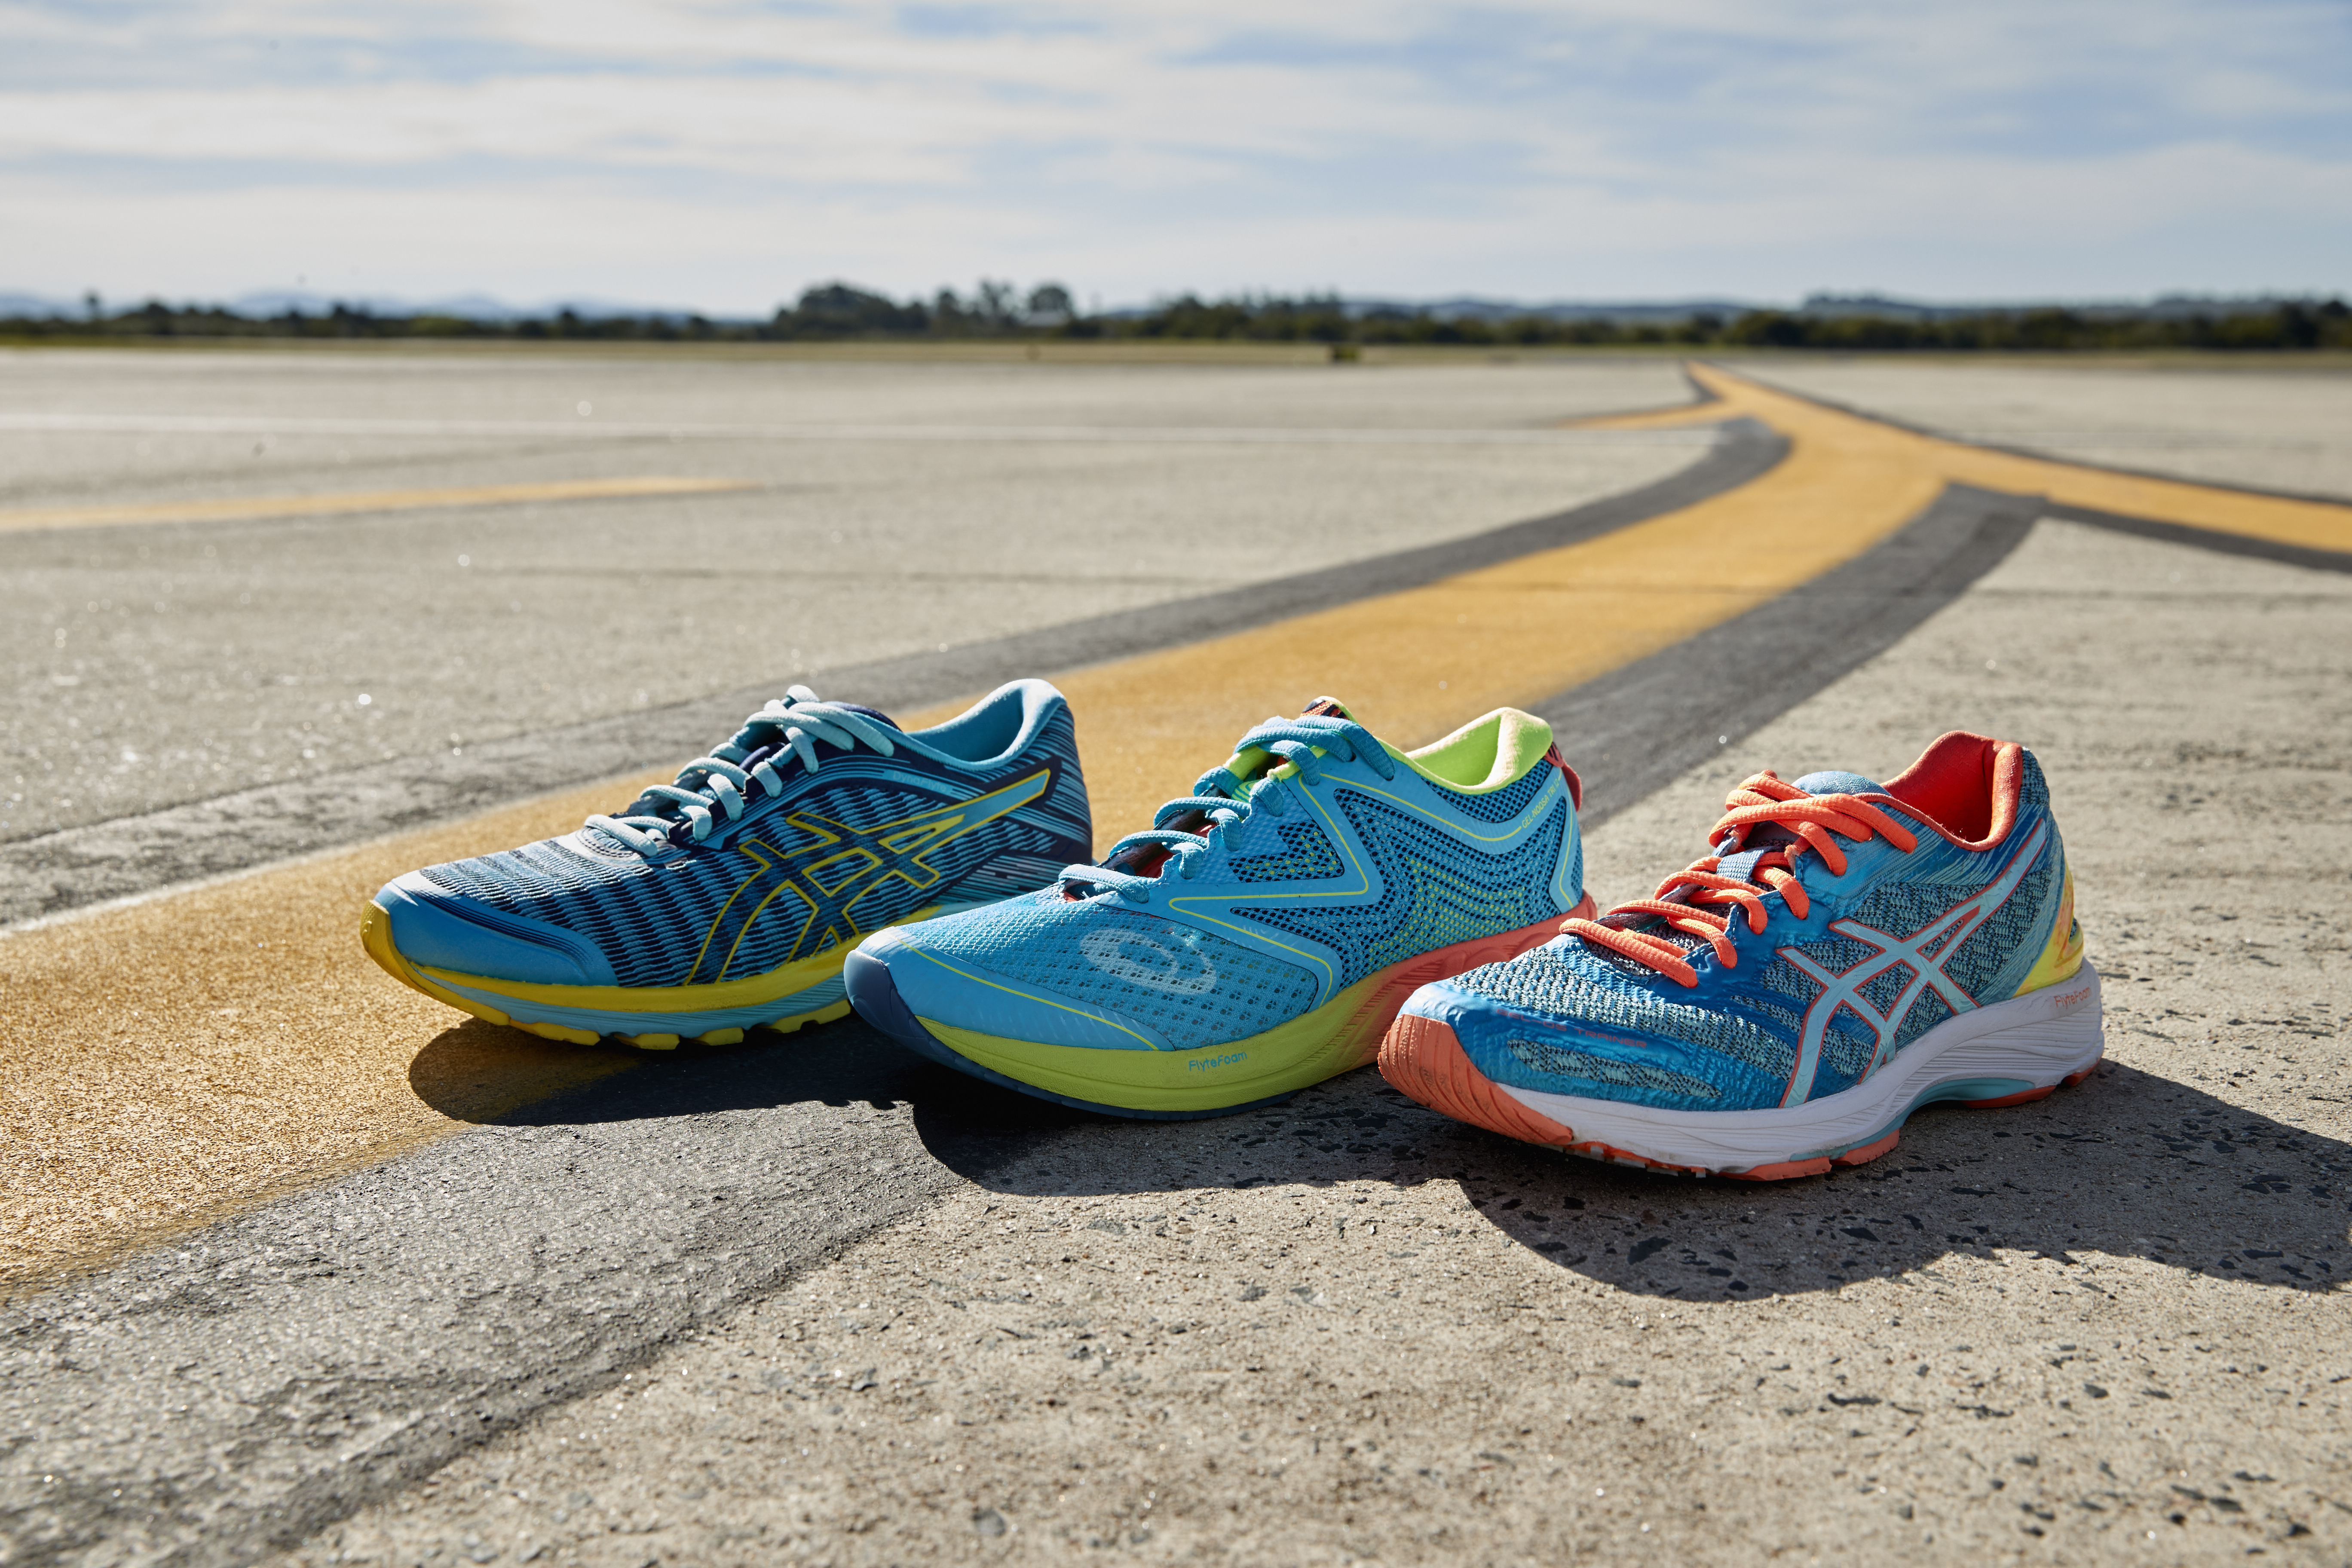 Ricordo scienziato sezione  ASICS TAKES FAST TO ANOTHER LEVEL With launch of FlyteFoam™ Fast Series &  ASICS Pace Academy on Runkeeper | ASICS Global - The Official Corporate  Website for ASICS and Its Affiliates